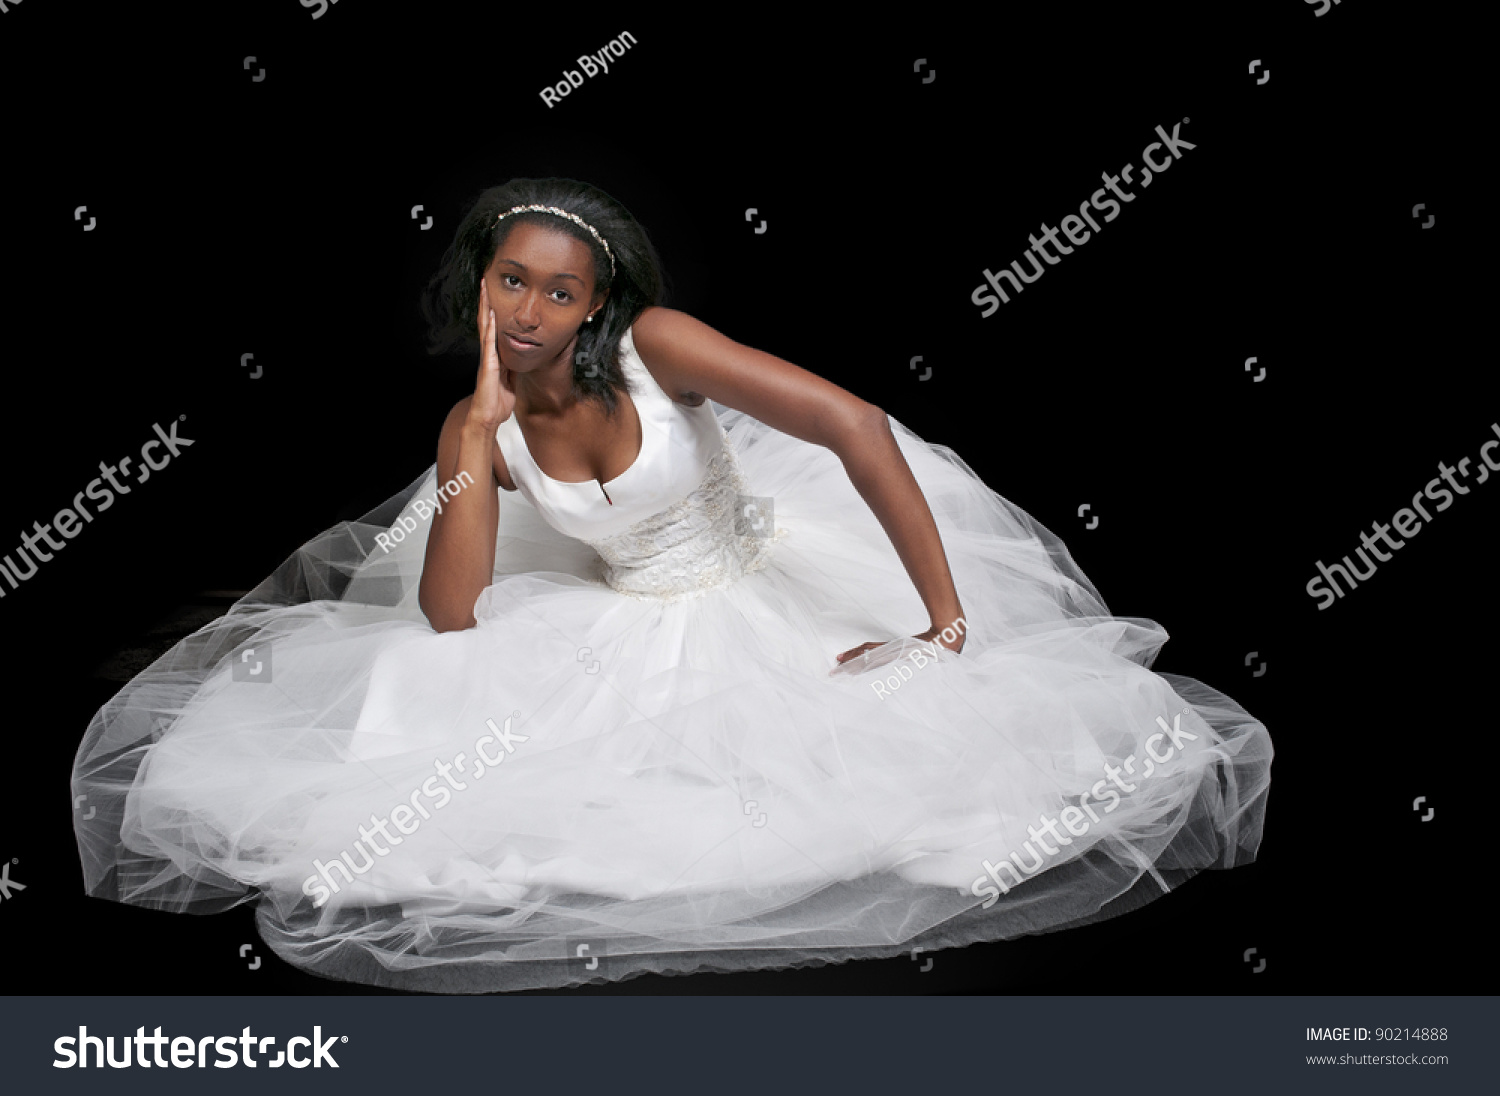 07 african american wedding dresses The